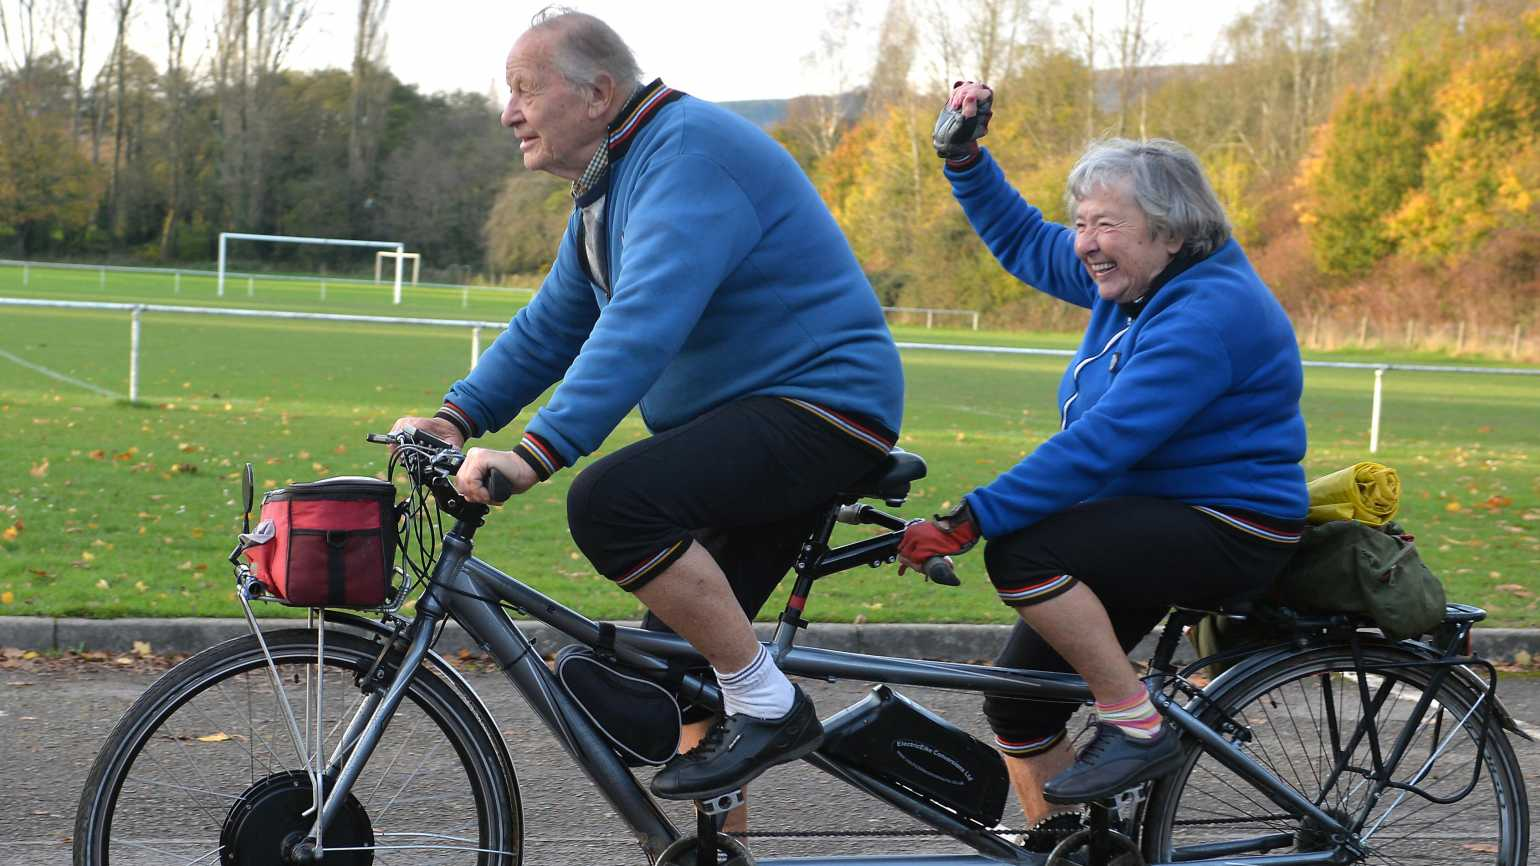 """Britain's oldest tandem riders are still hopping on their """"bicycle made for two"""" - with a combined grand old age of 177."""